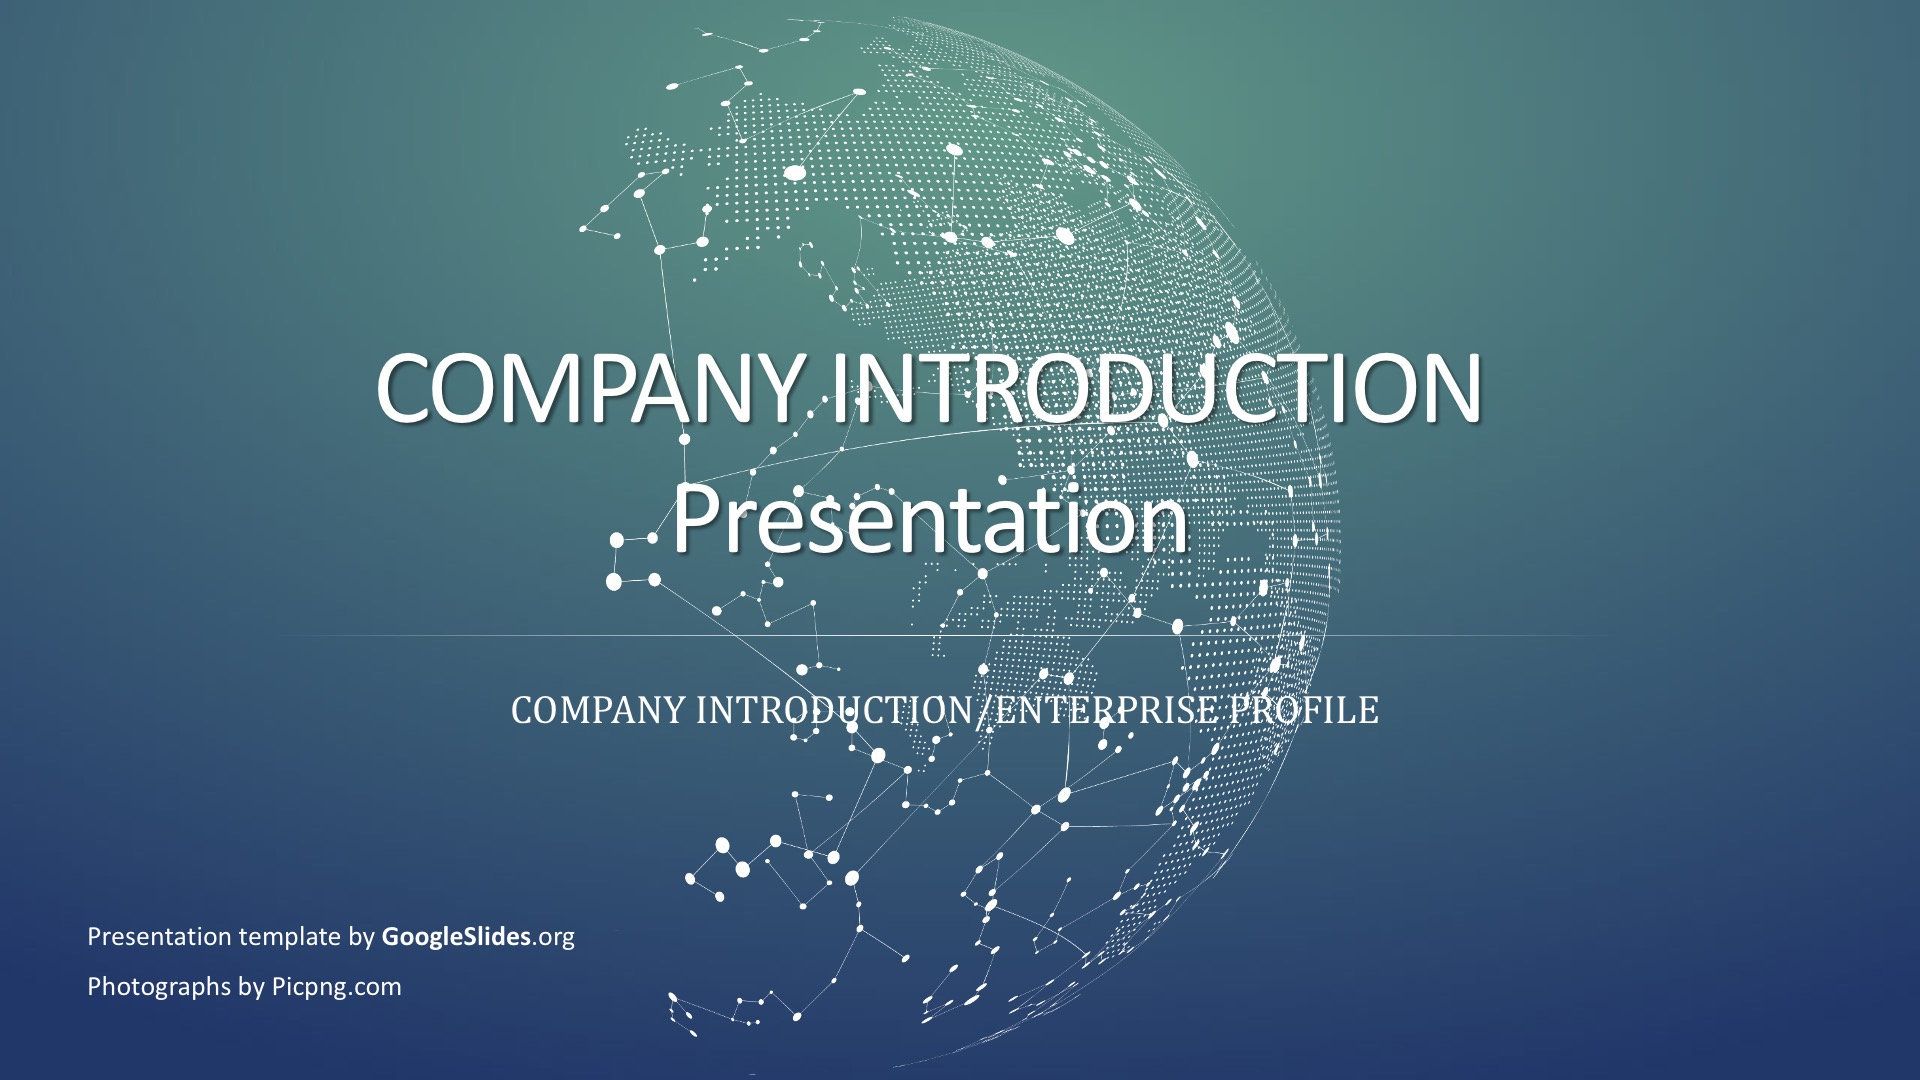 Company Introduction Powerpoint Template  U00b7 Business